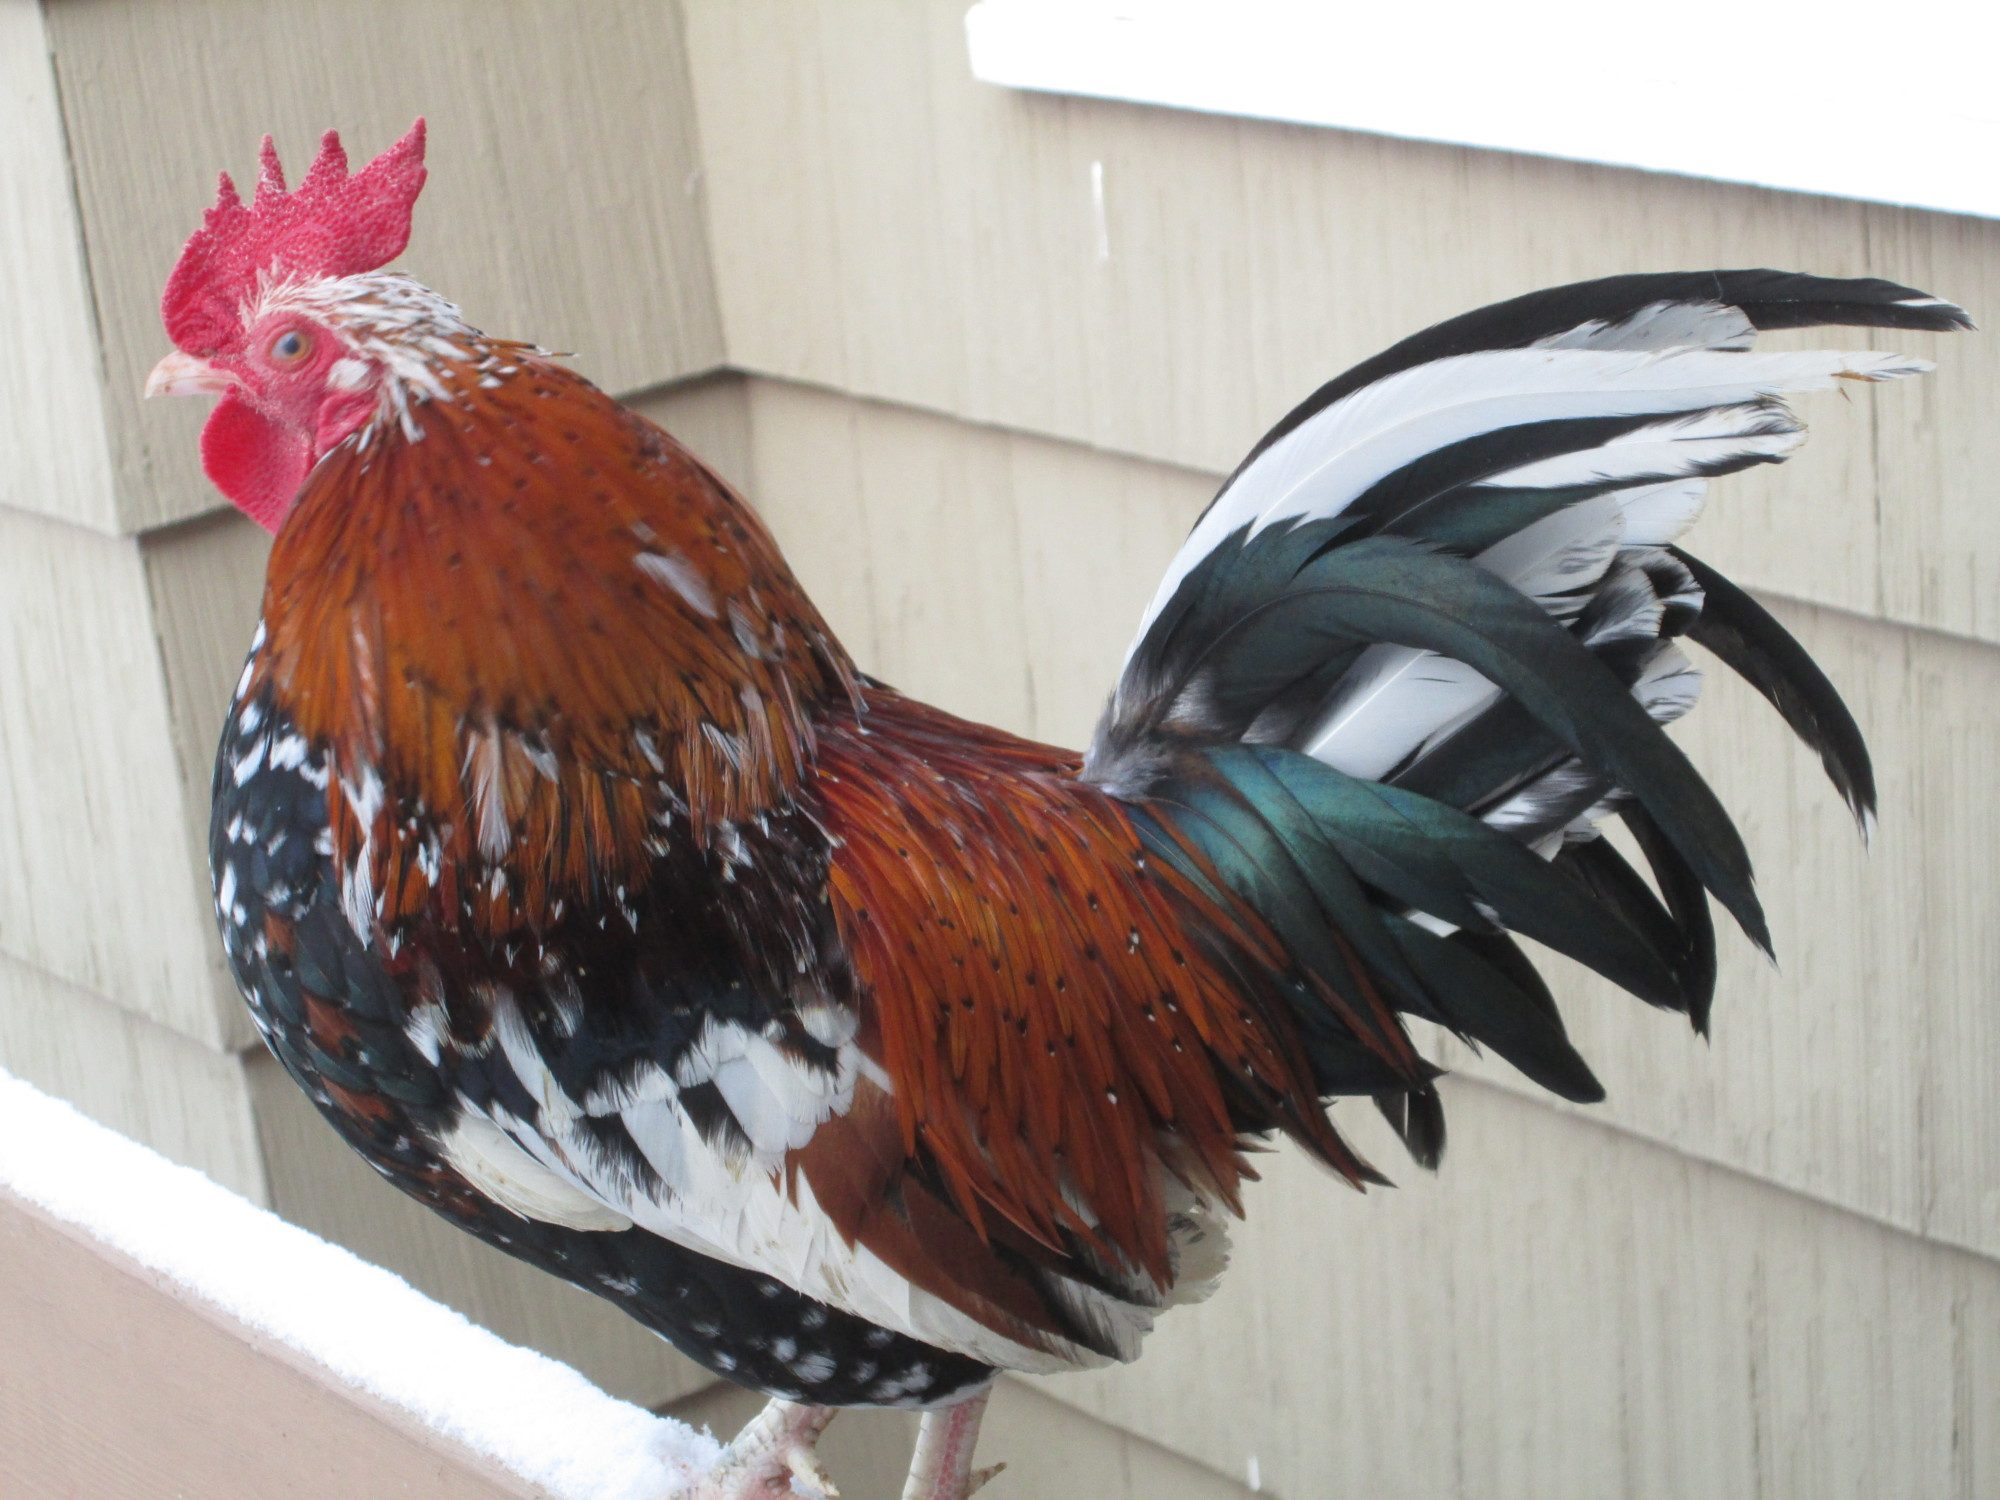 Herducks's photos in NYD Hatch-along Contest #21: Most Colorful Rooster